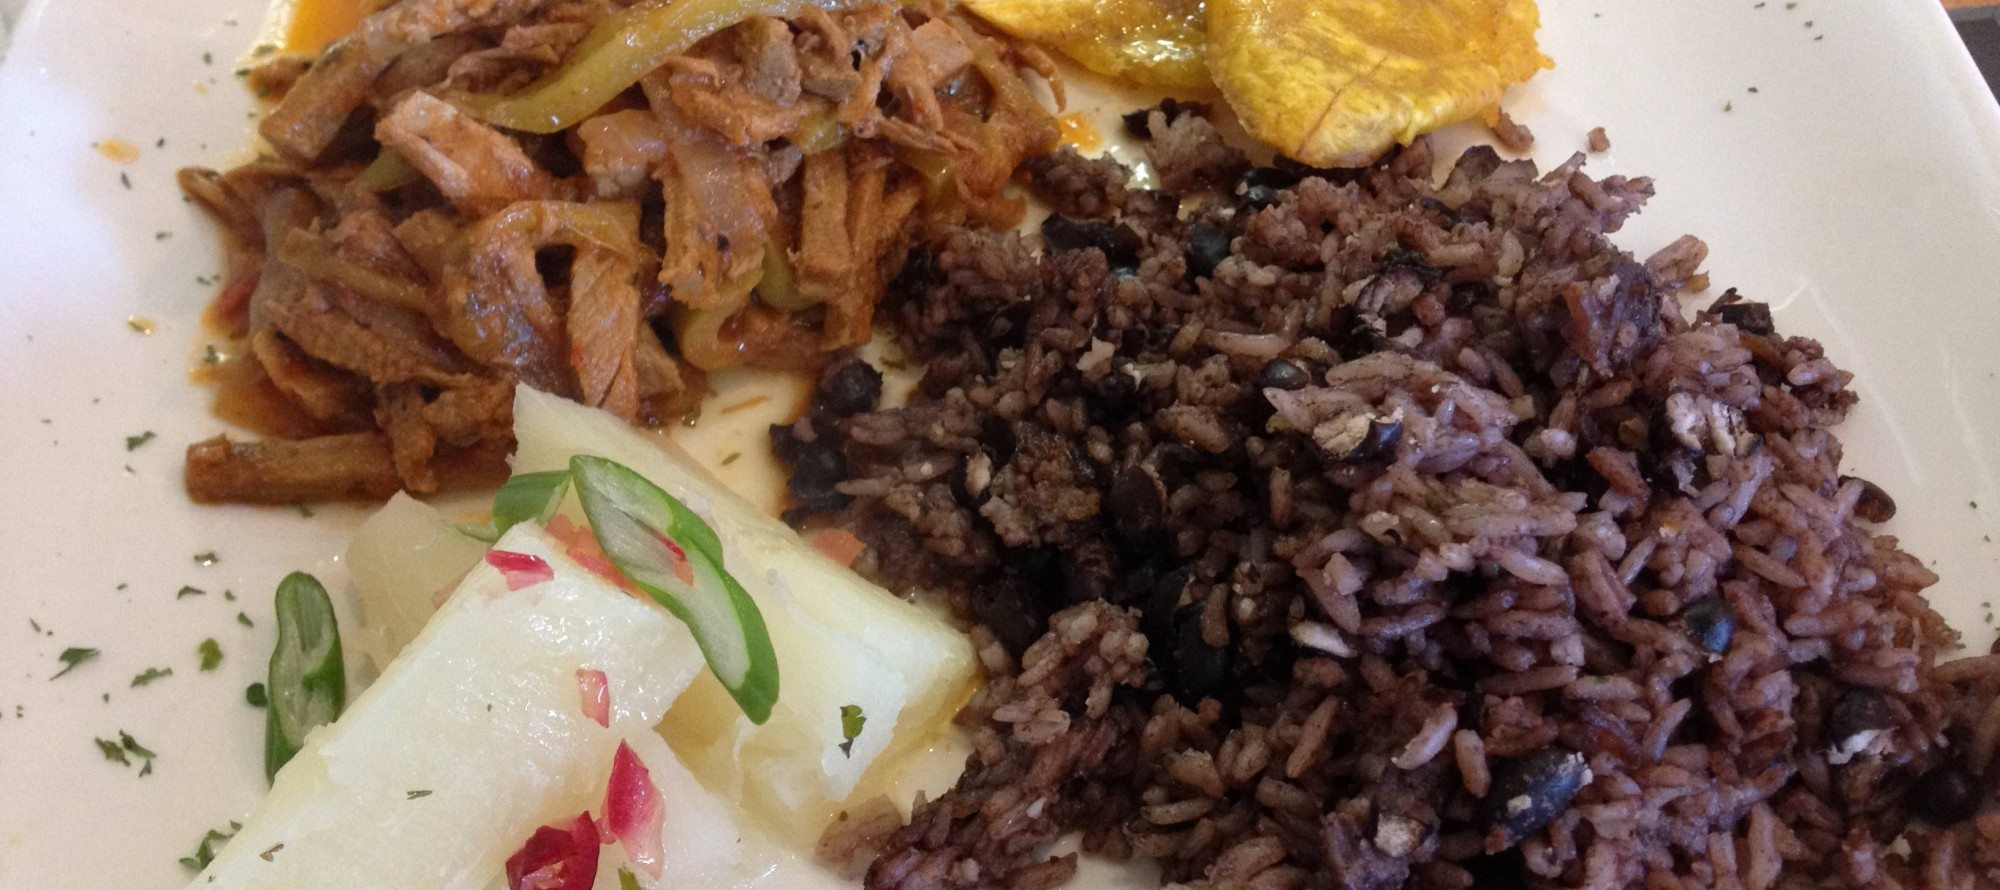 WEEKLY LUNCH PICK: Savouring a taste of the tropics at Havana Café